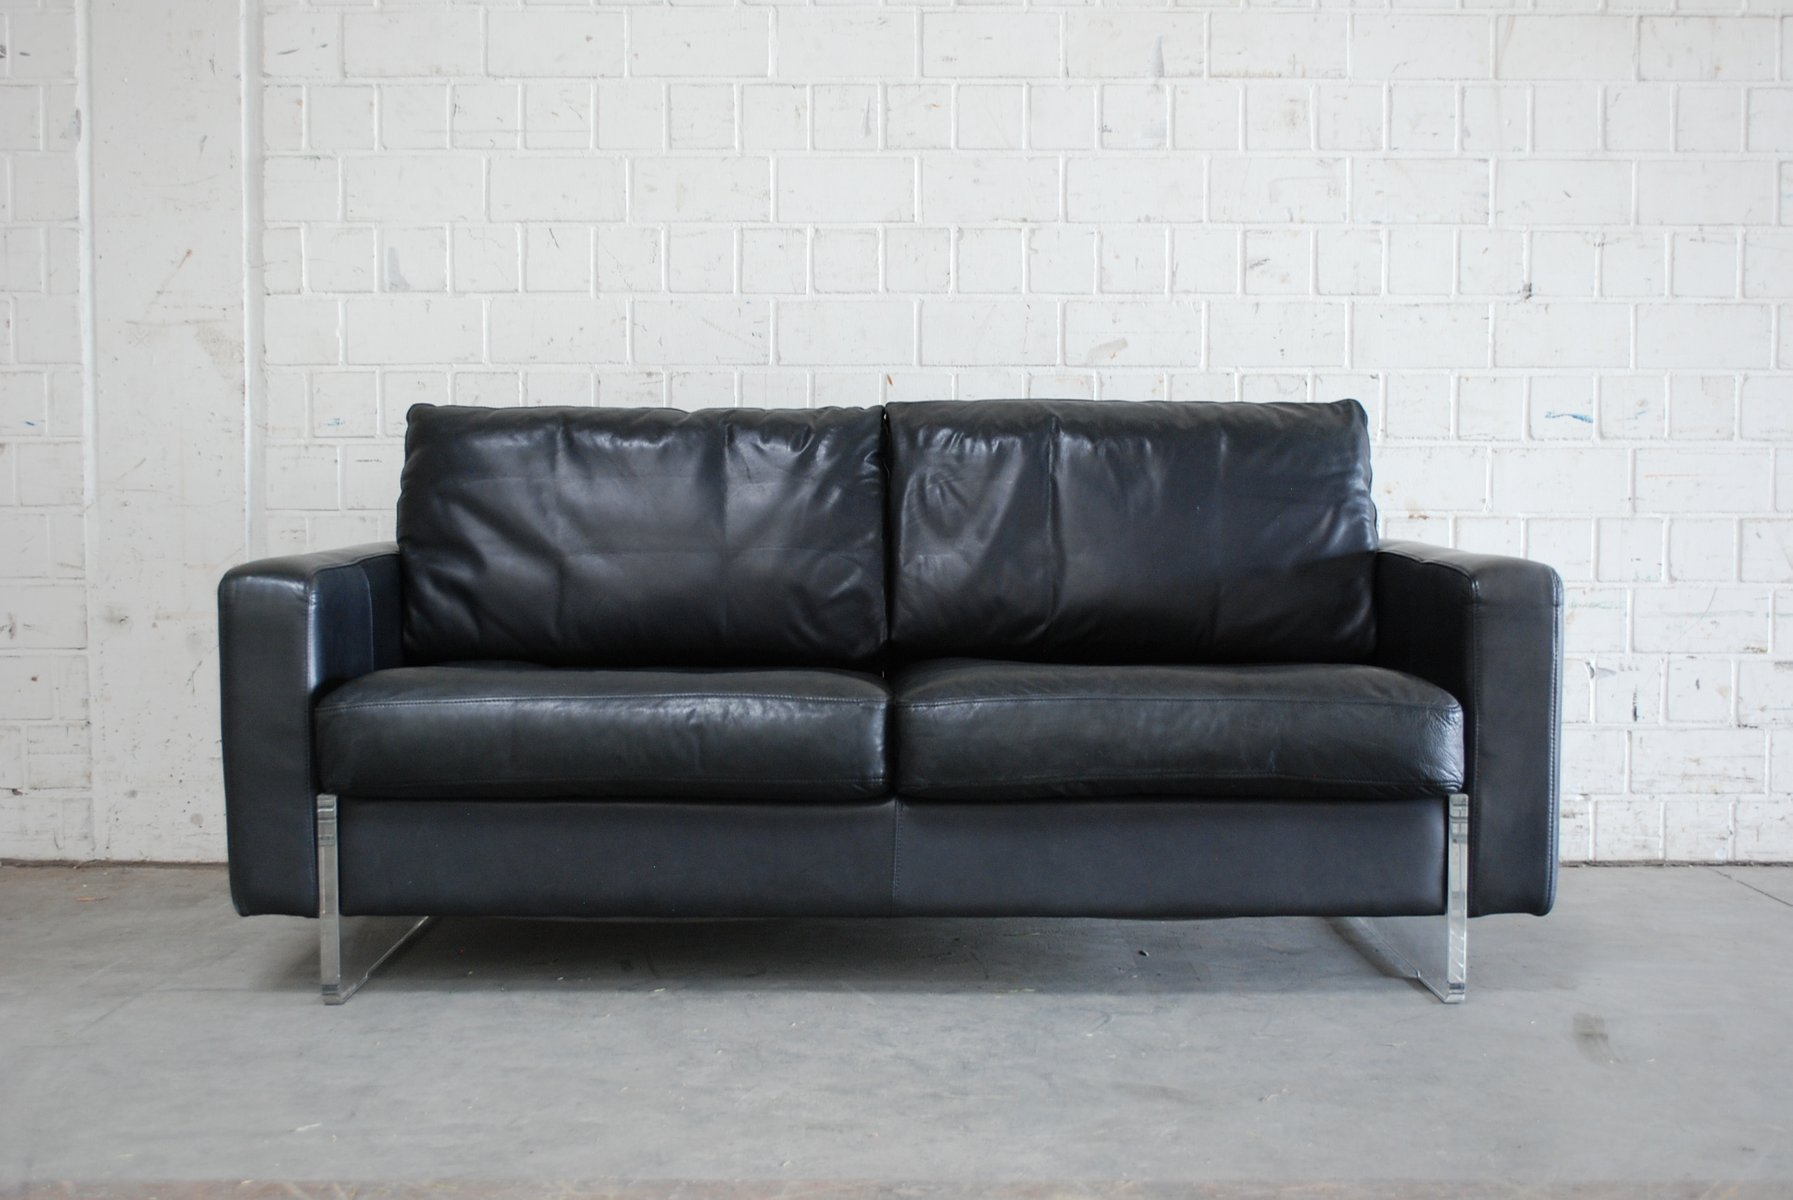 Vintage Black Leather Sofa From Lavalina For Sale At Pamono